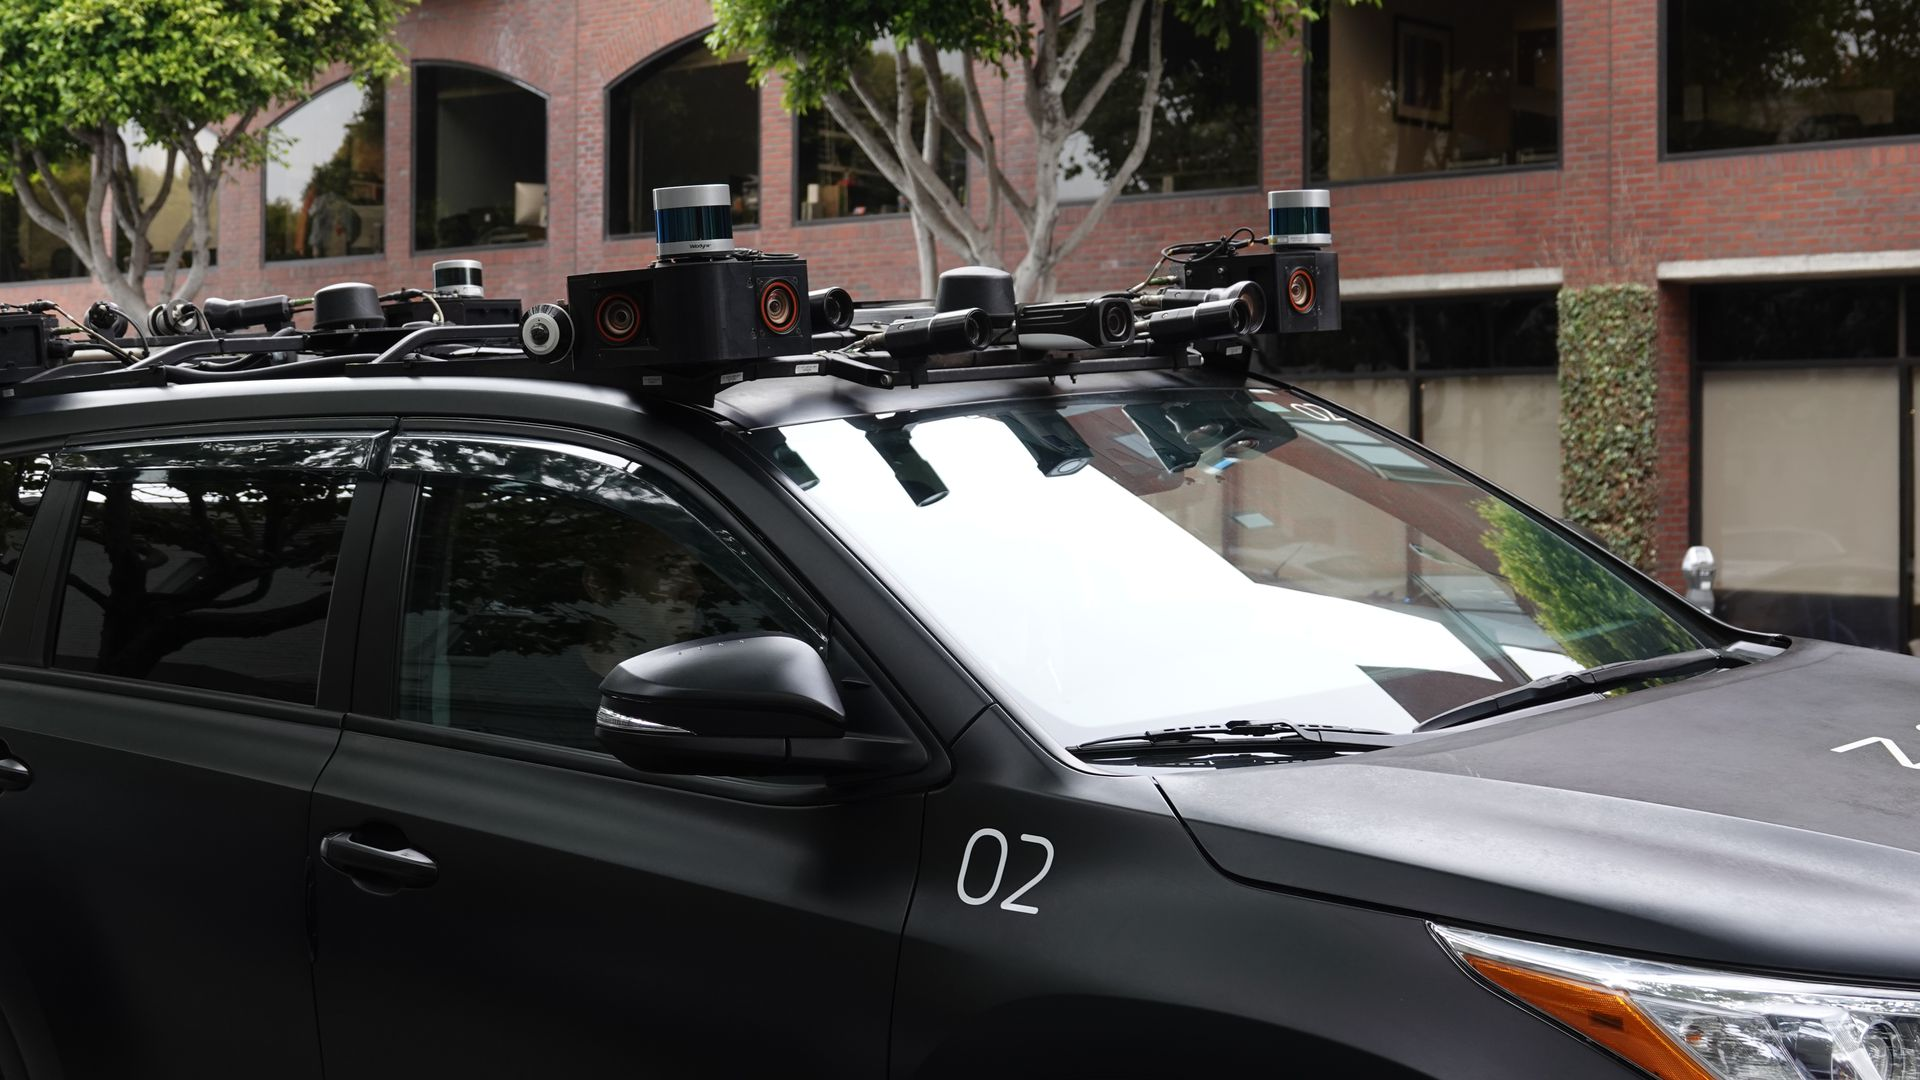 Zoox self-driving car a the street in San Francisco.